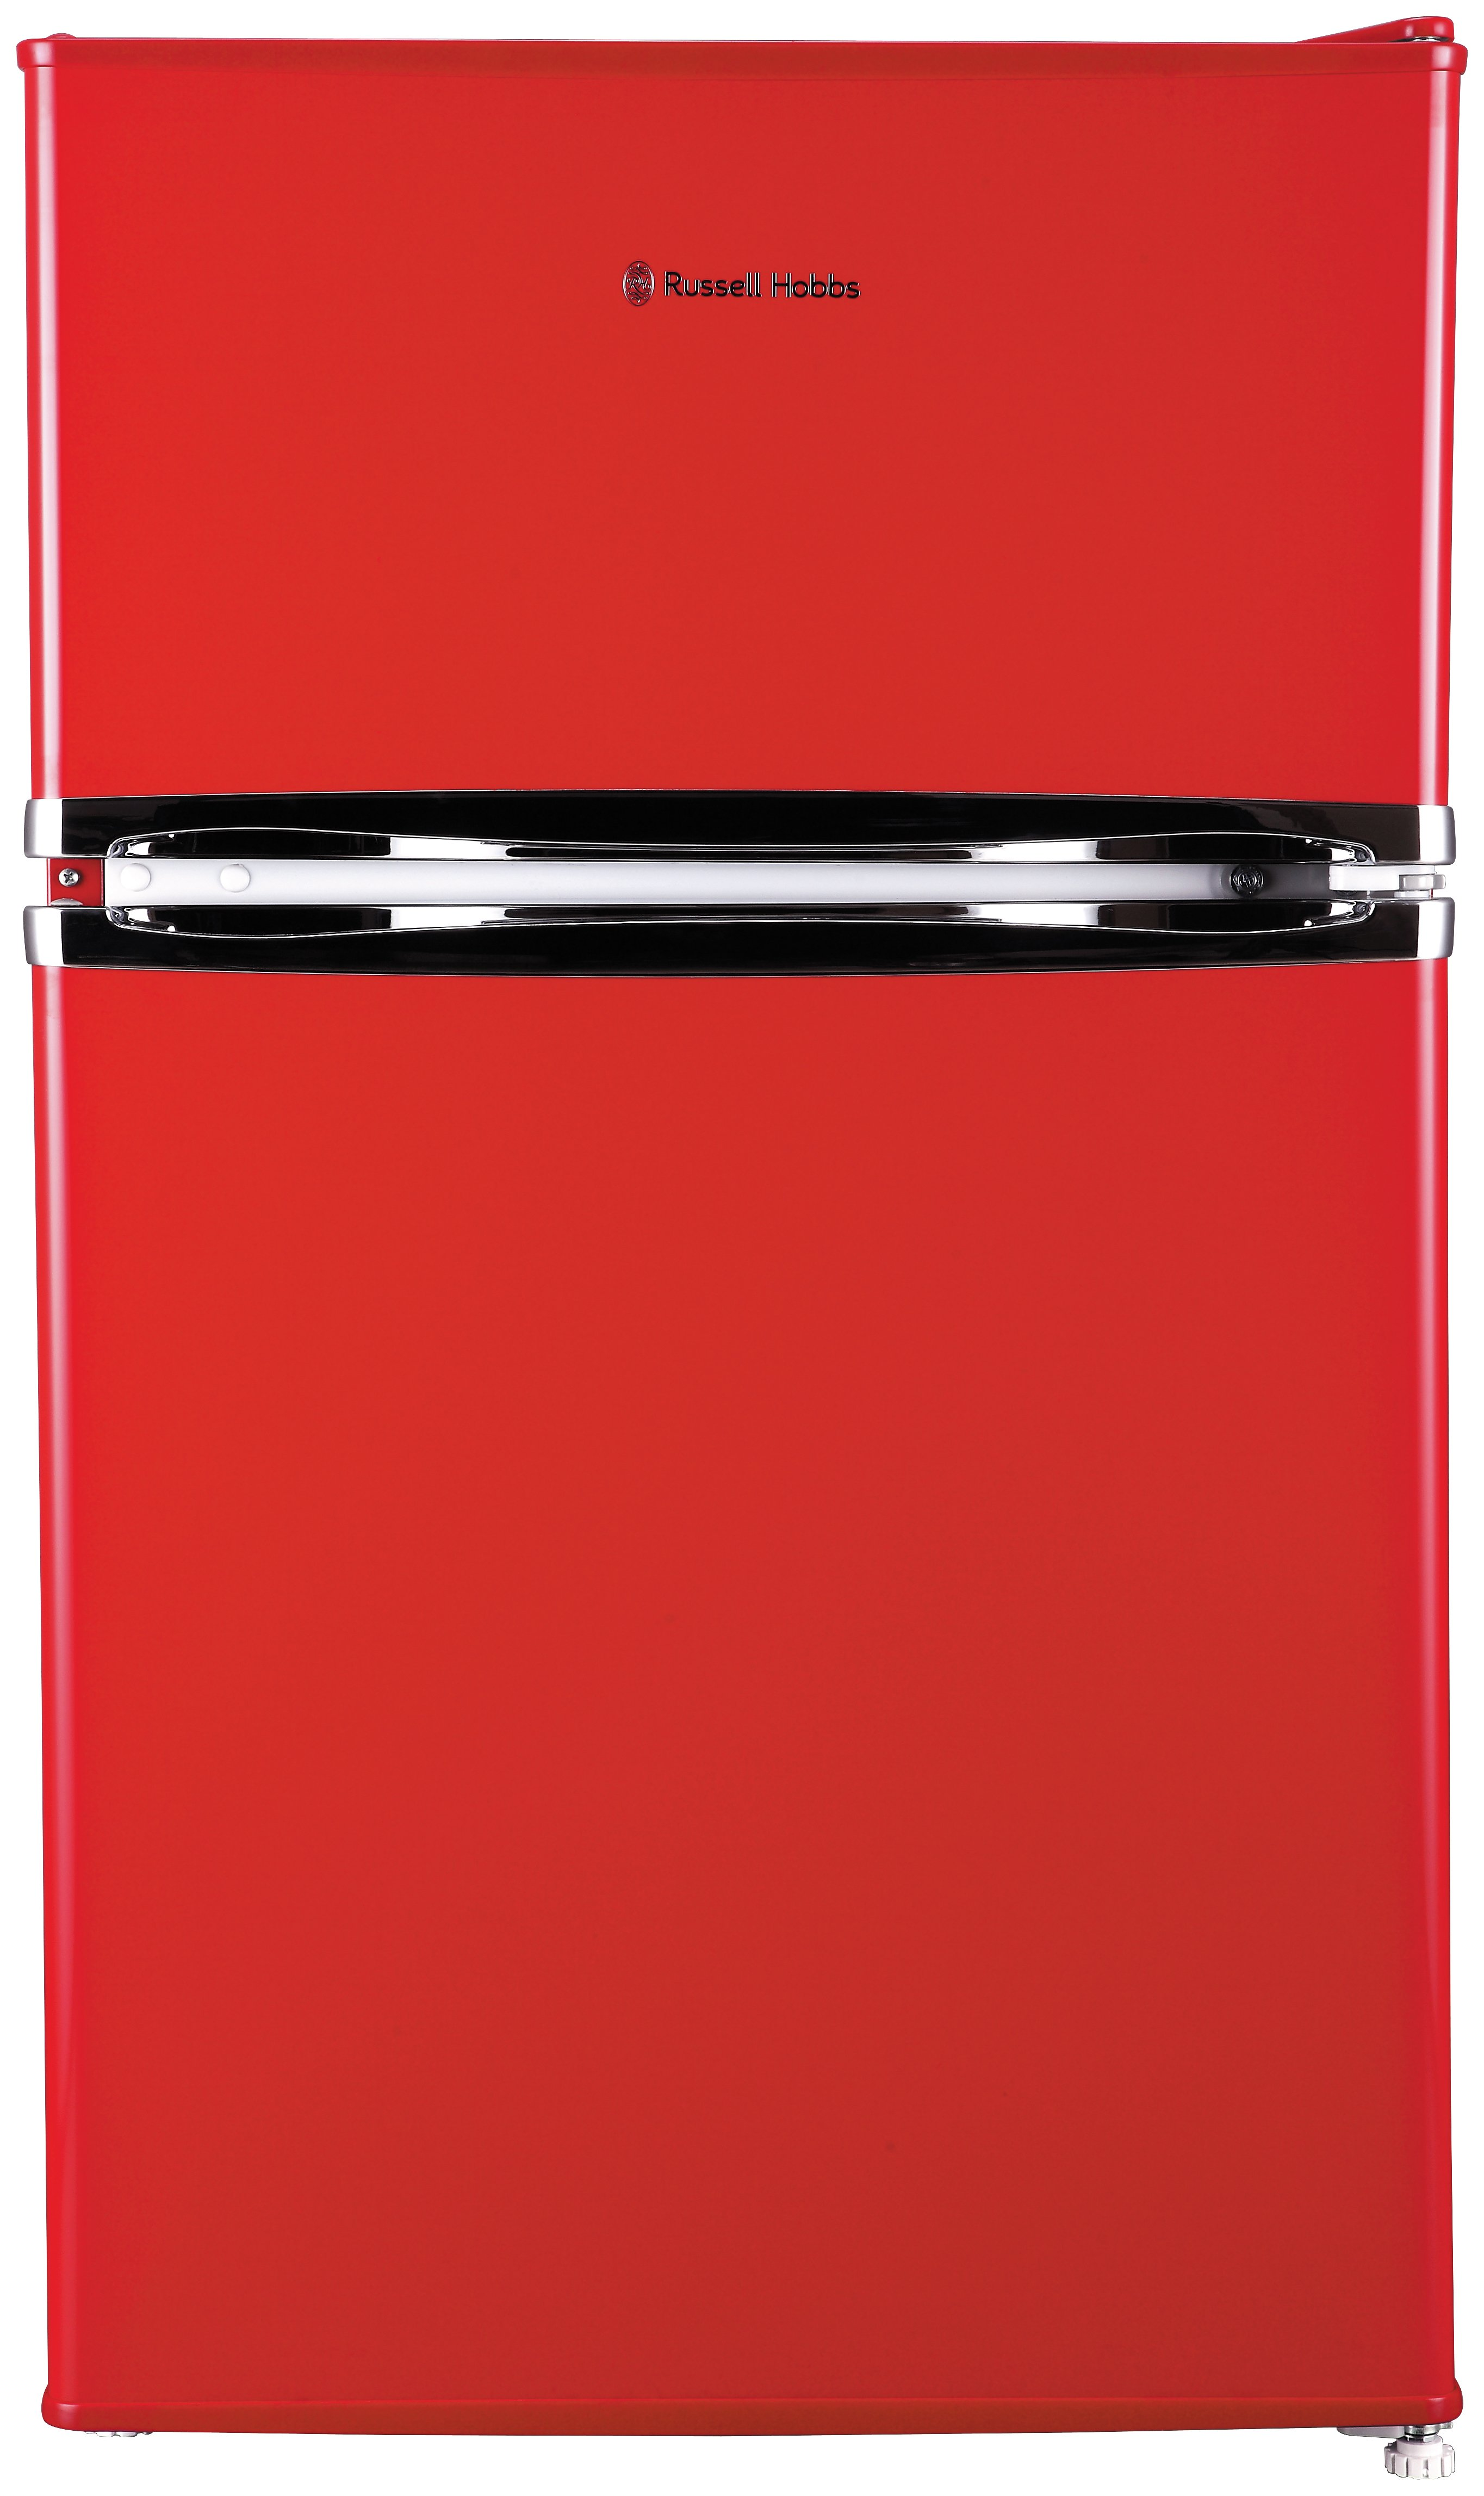 Russell Hobbs RHUCFF50R Under Counter Fridge Freezer - Red